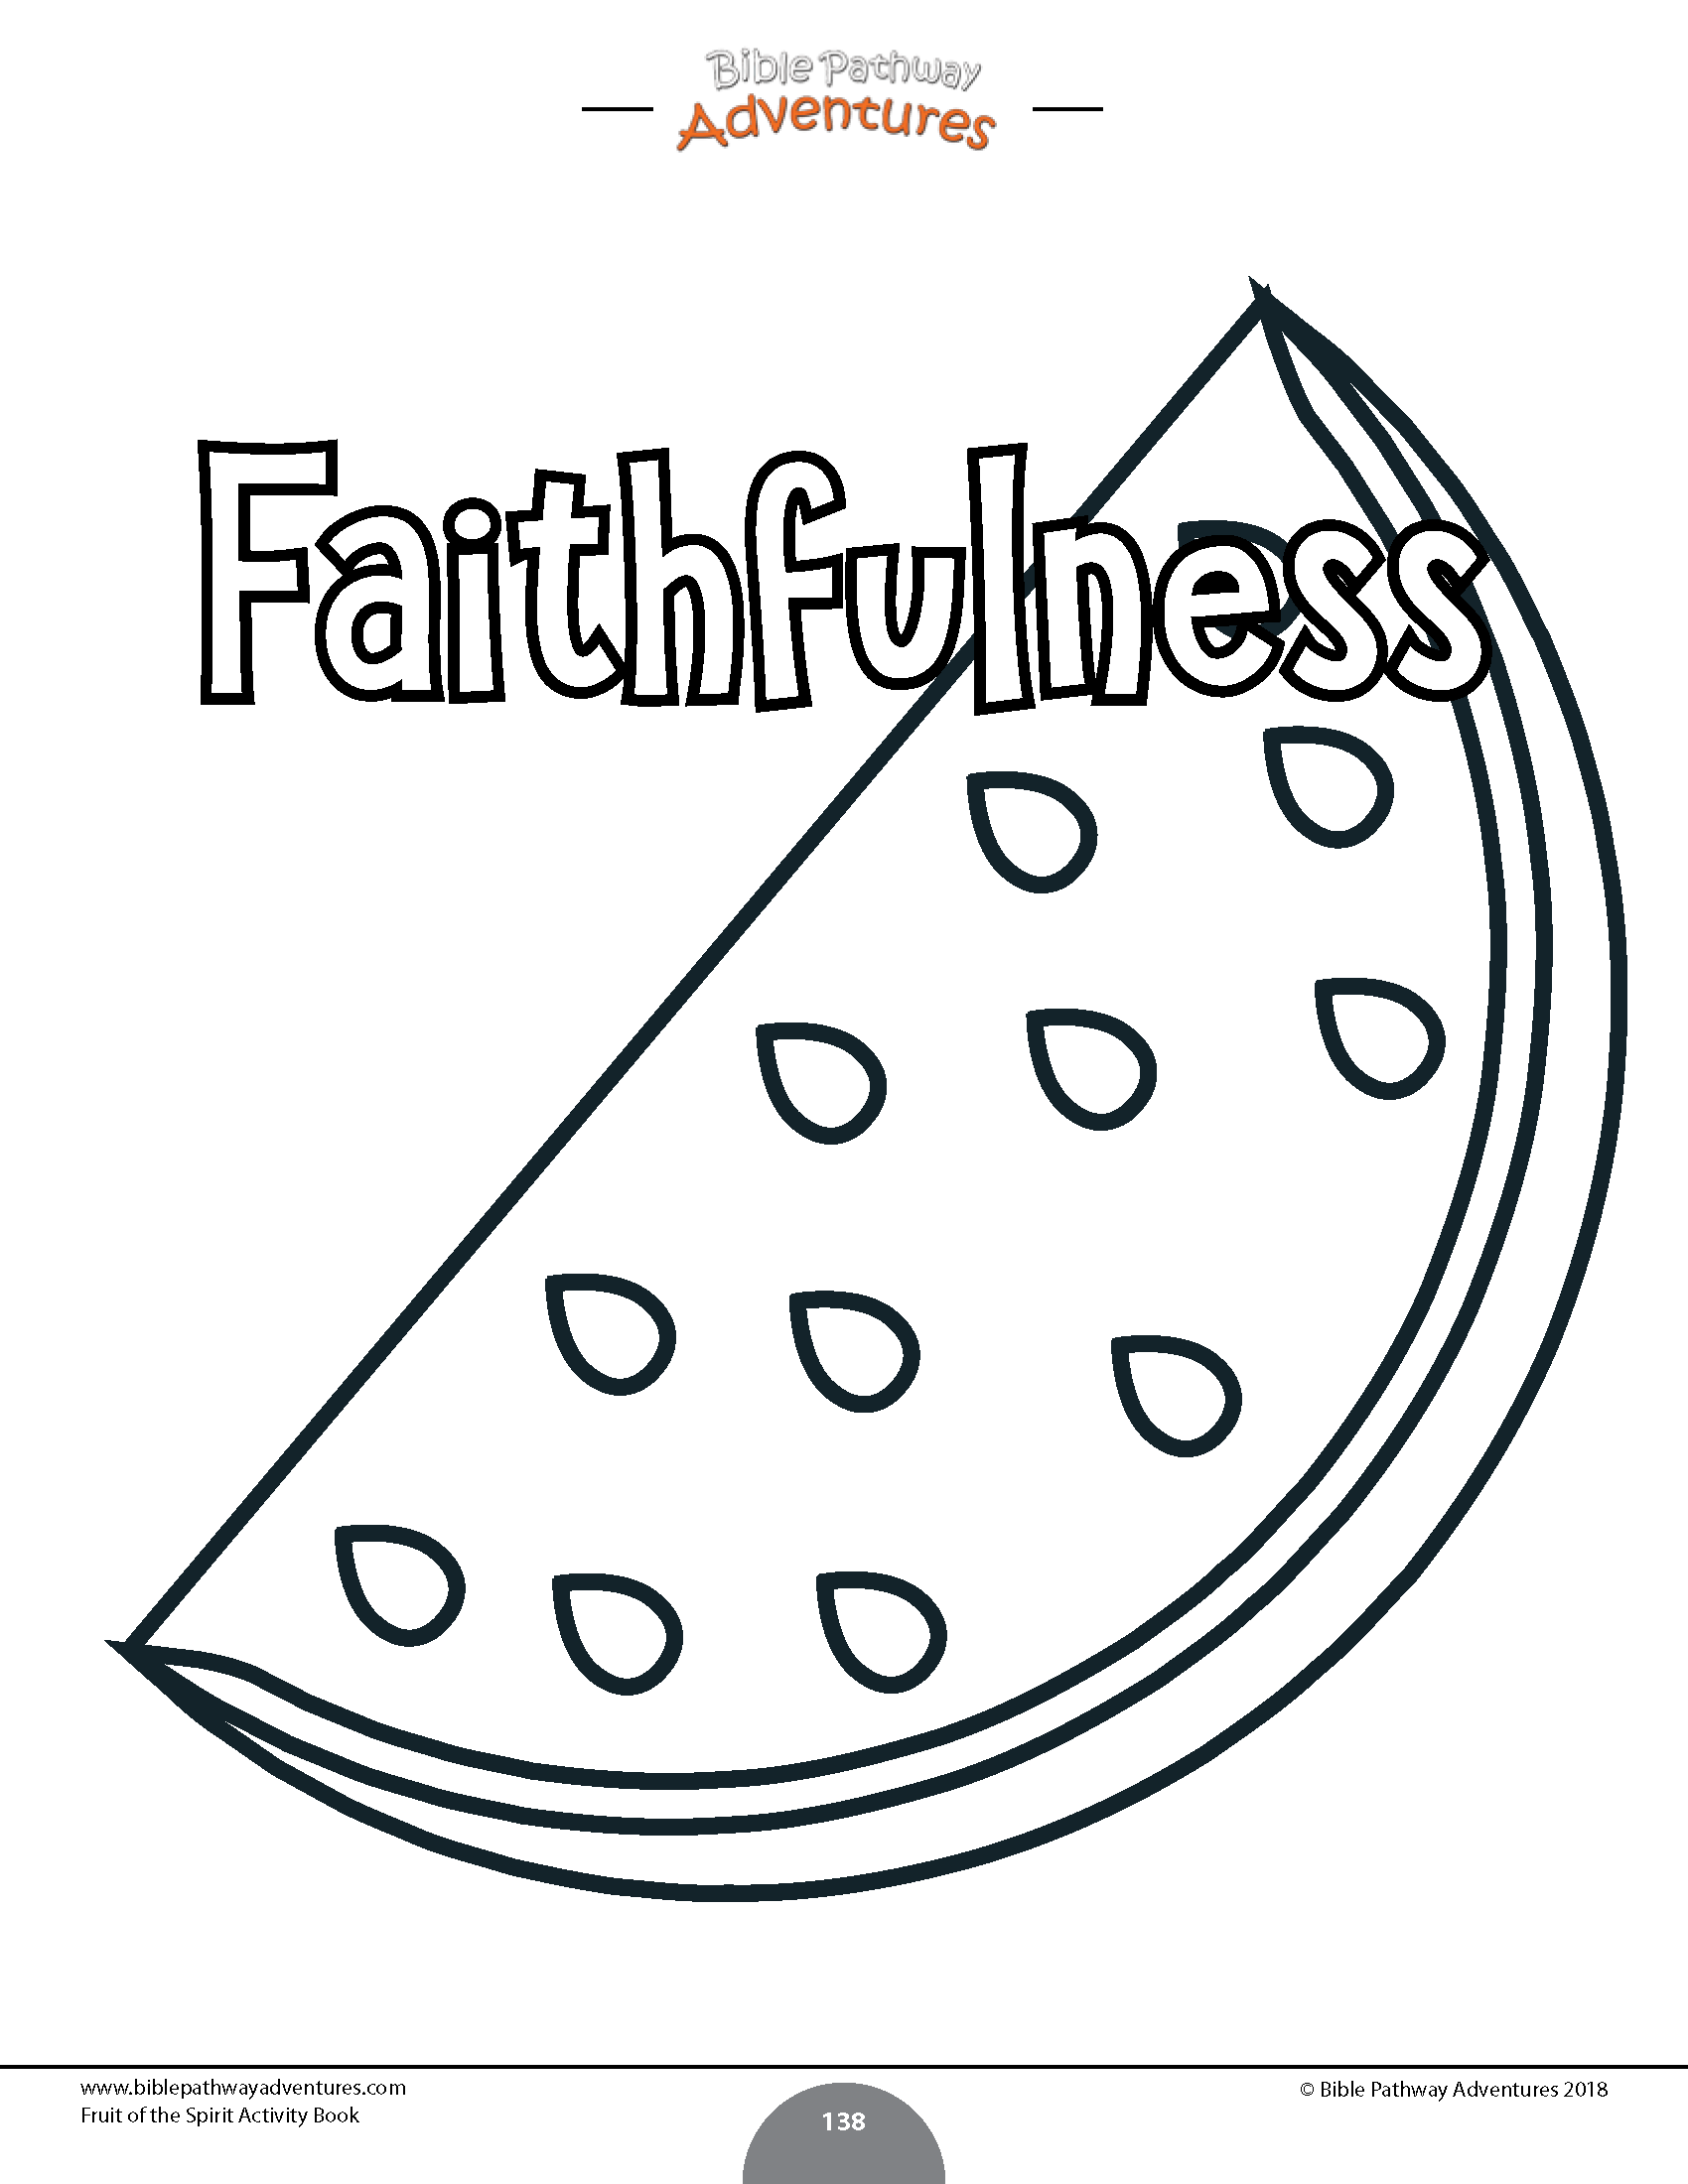 Fruit Of The Spirit Coloring Activity Book Bible Activities For Kids Bible Study For Kids Book Activities